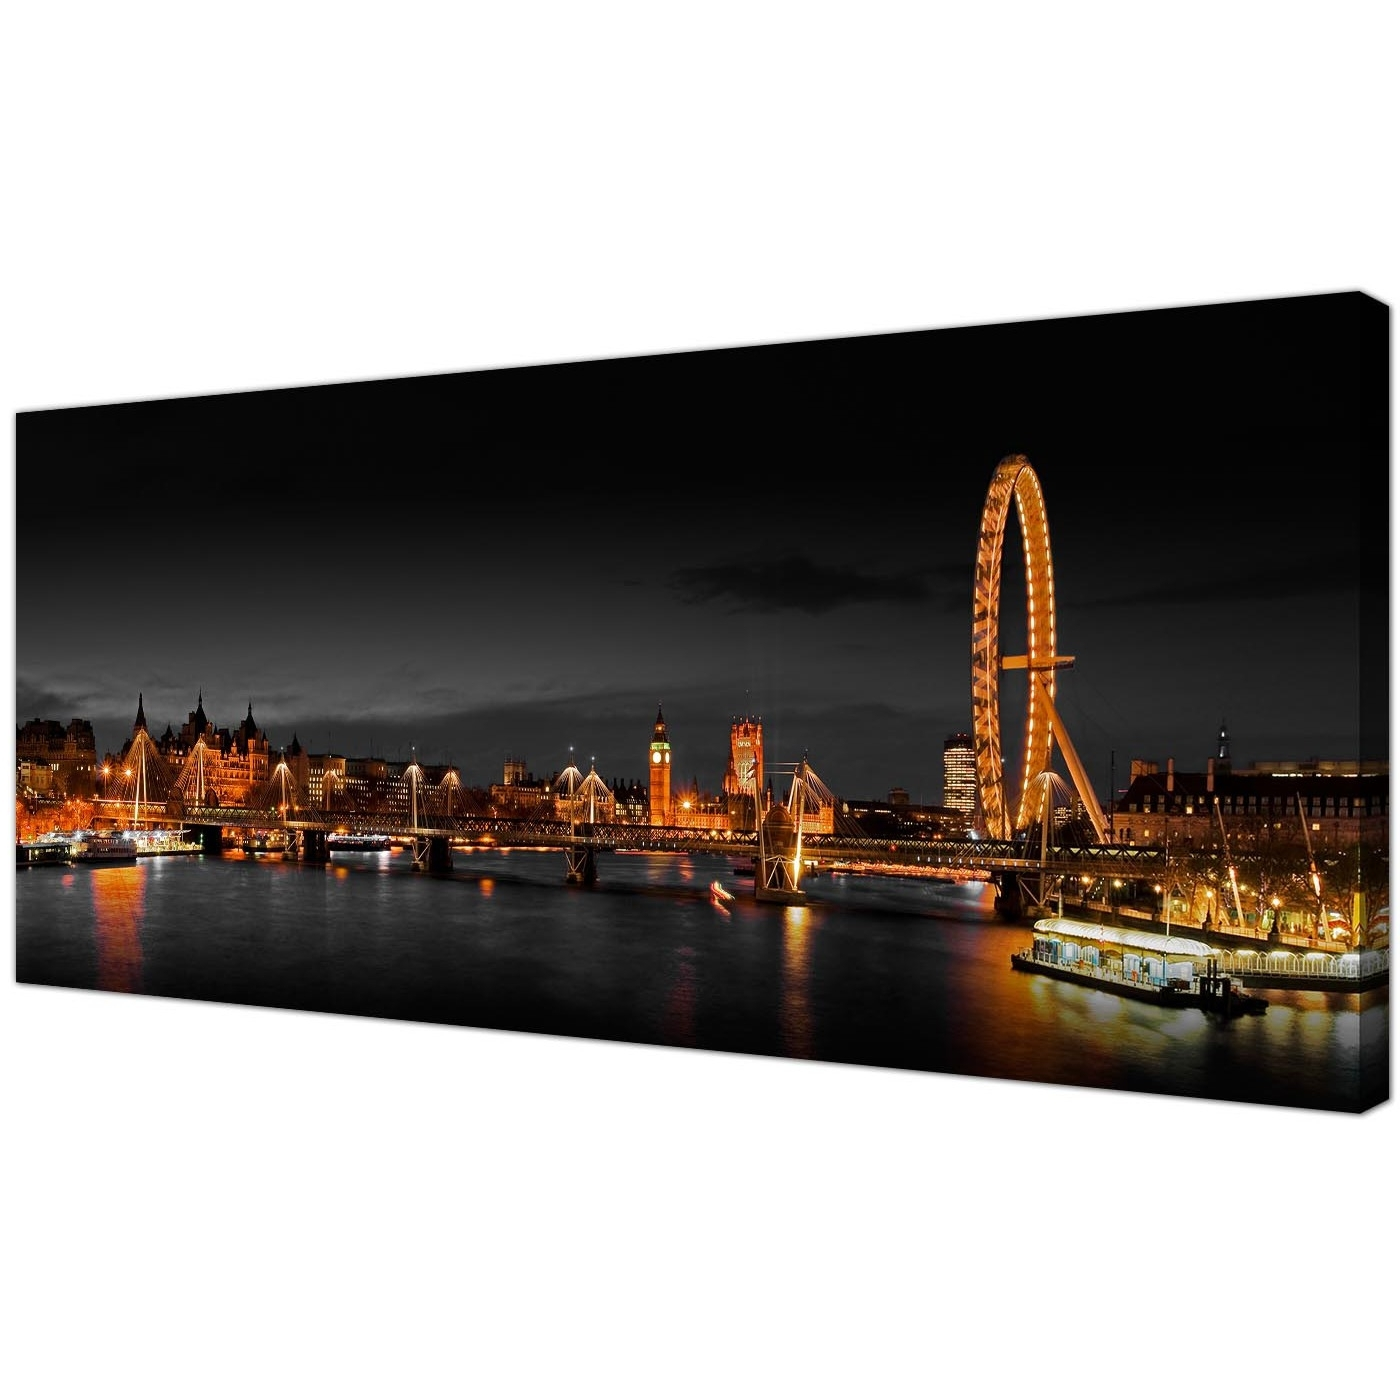 Cheap Canvas Wall Art For Most Recently Released Panoramic Canvas Wall Art Of London Eye At Night For Your Living Room (View 9 of 15)